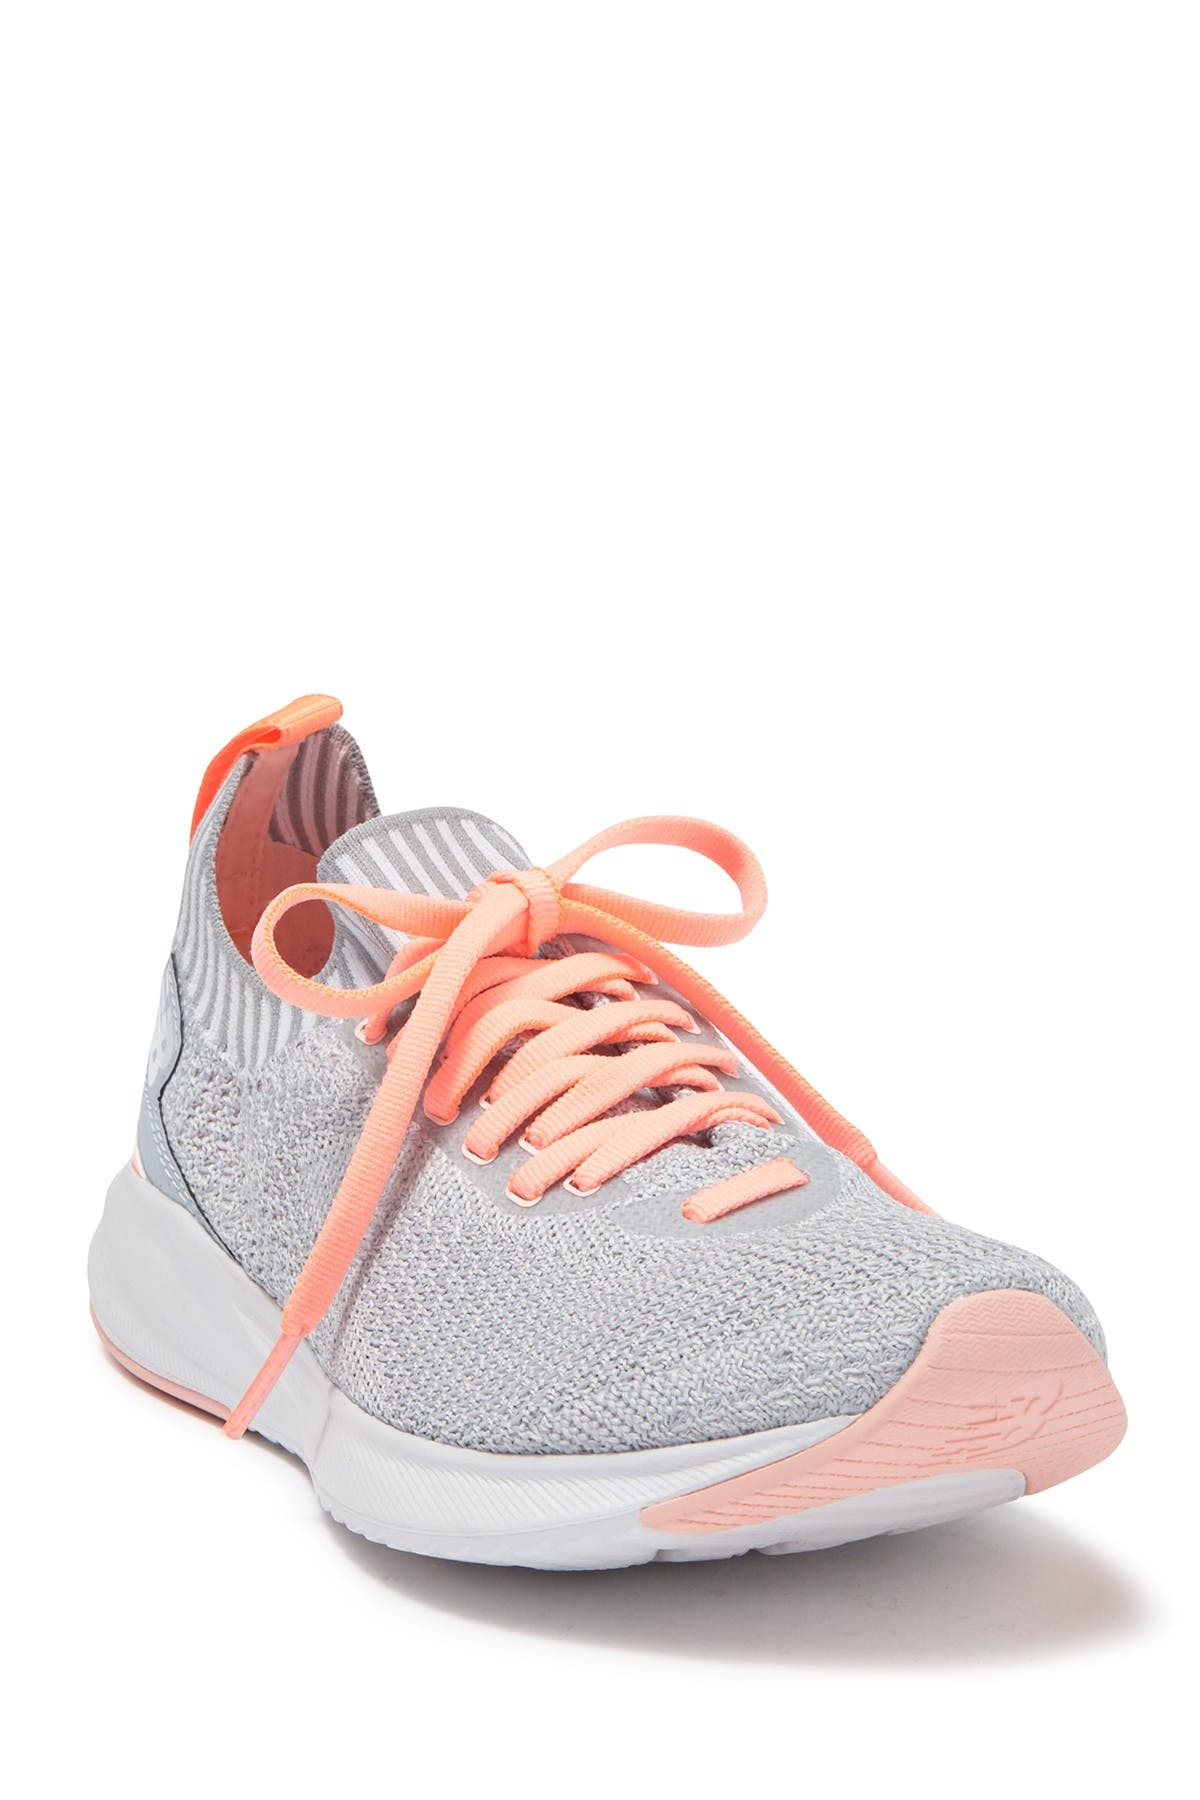 new balance sneakers nordstrom